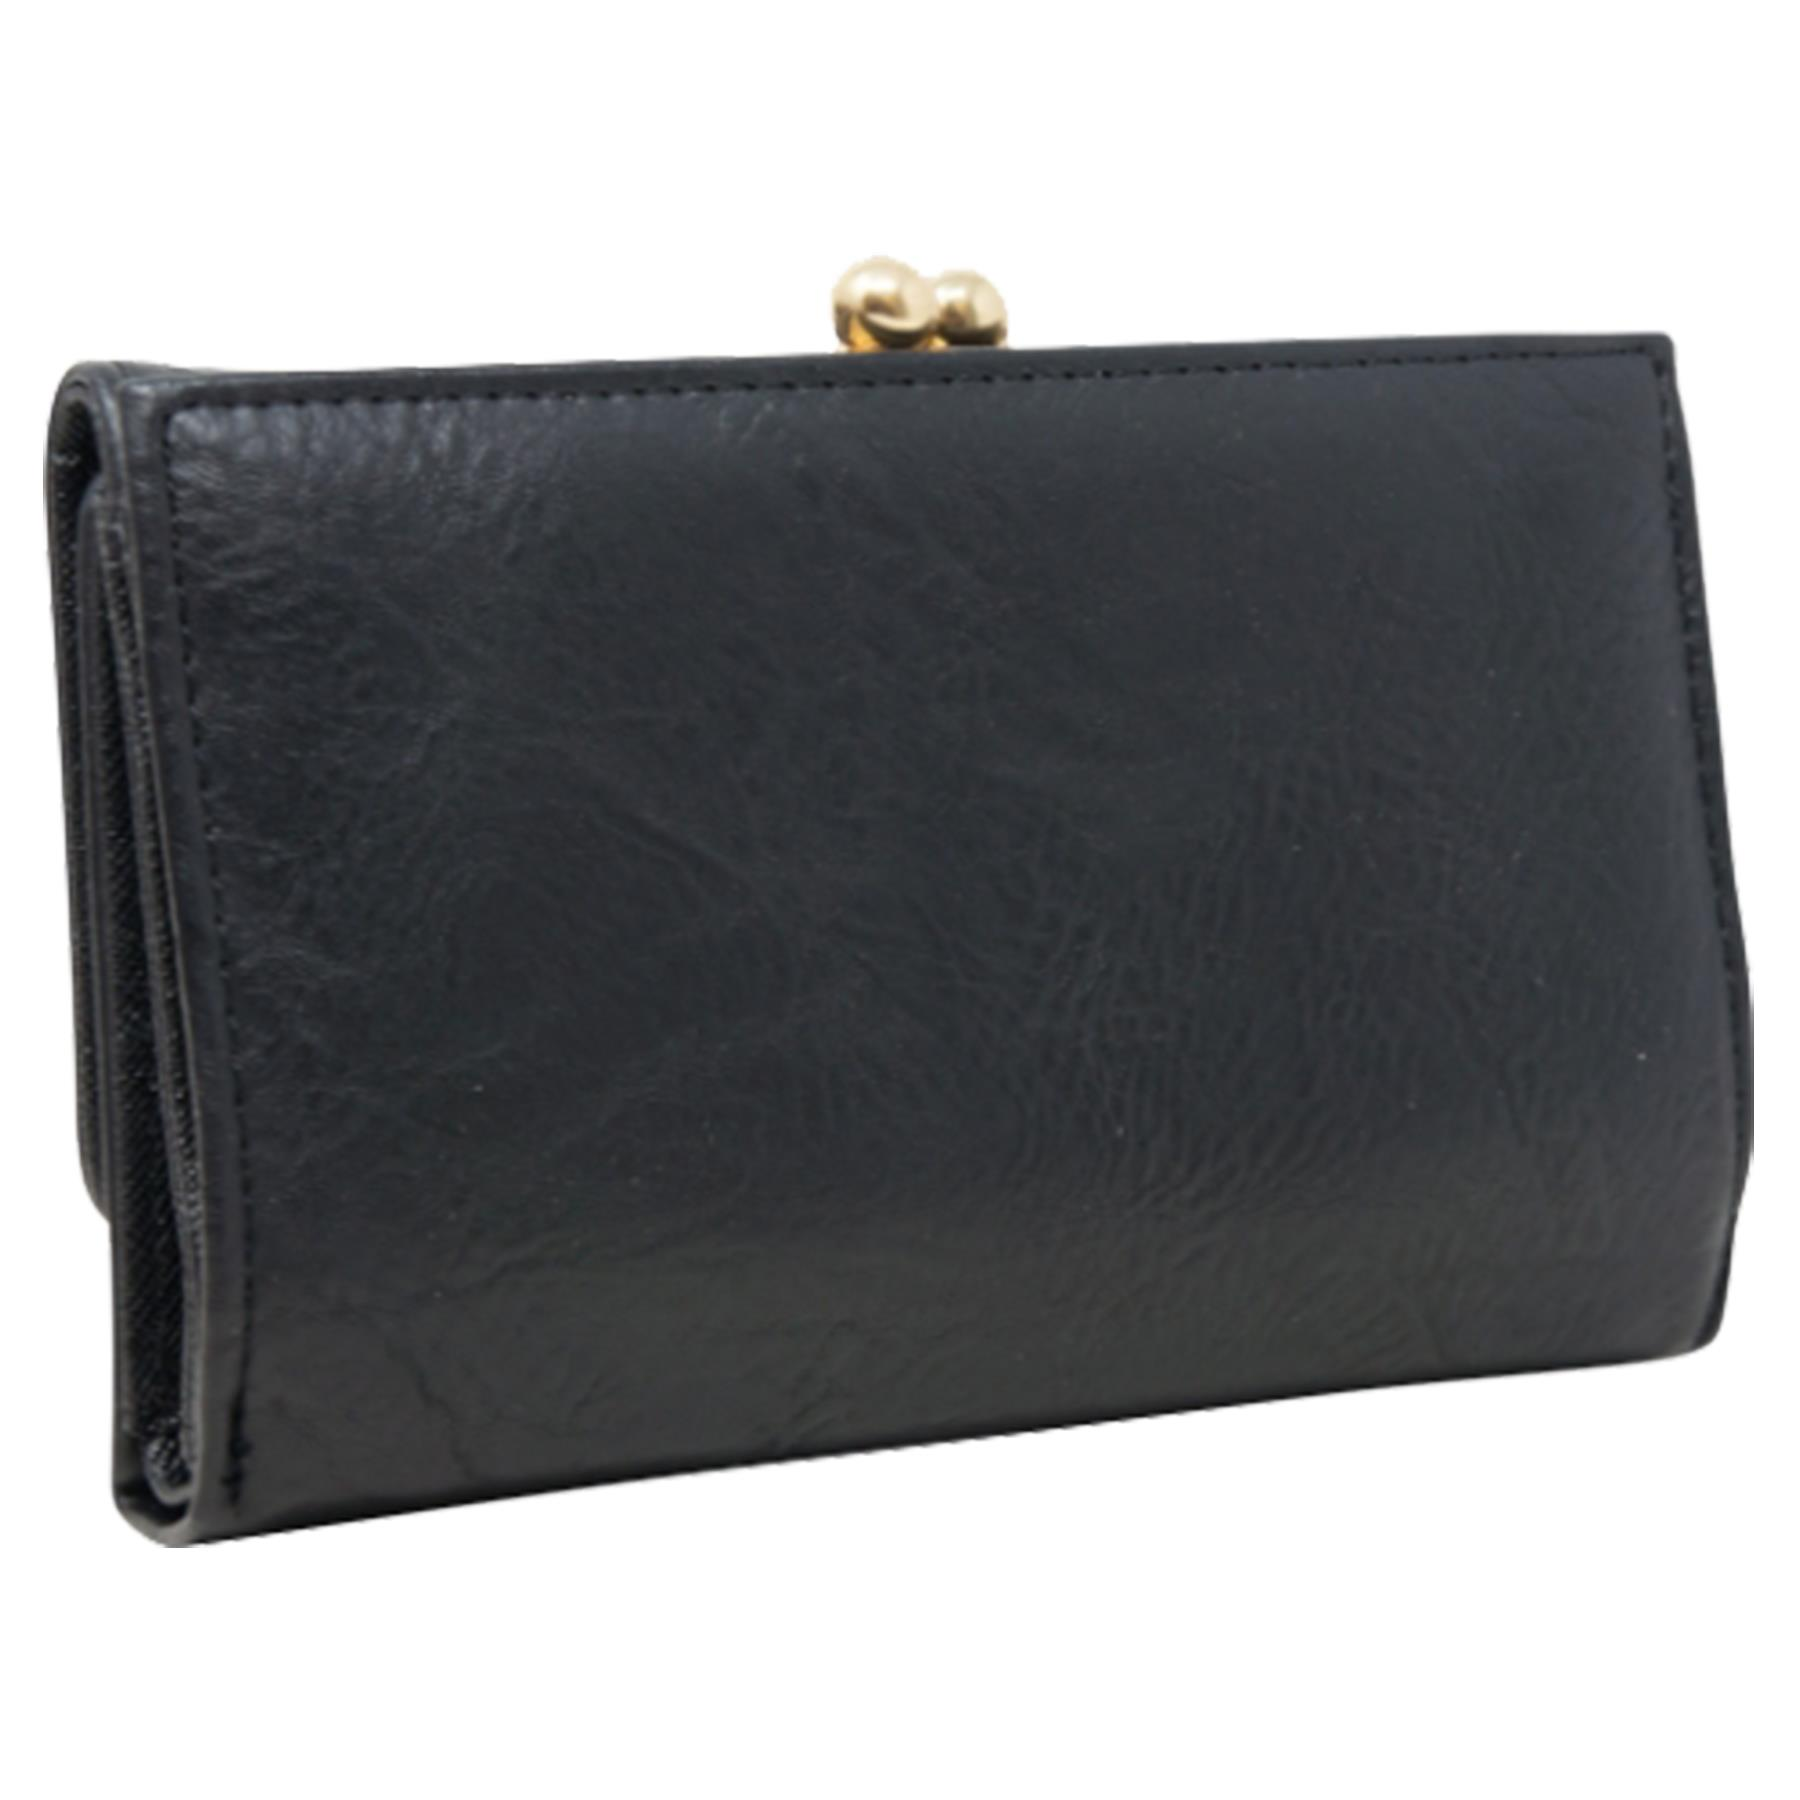 New-Synthetic-Leather-Kiss-Lock-Compartment-Ladies-Casual-Wallet-Purse thumbnail 3